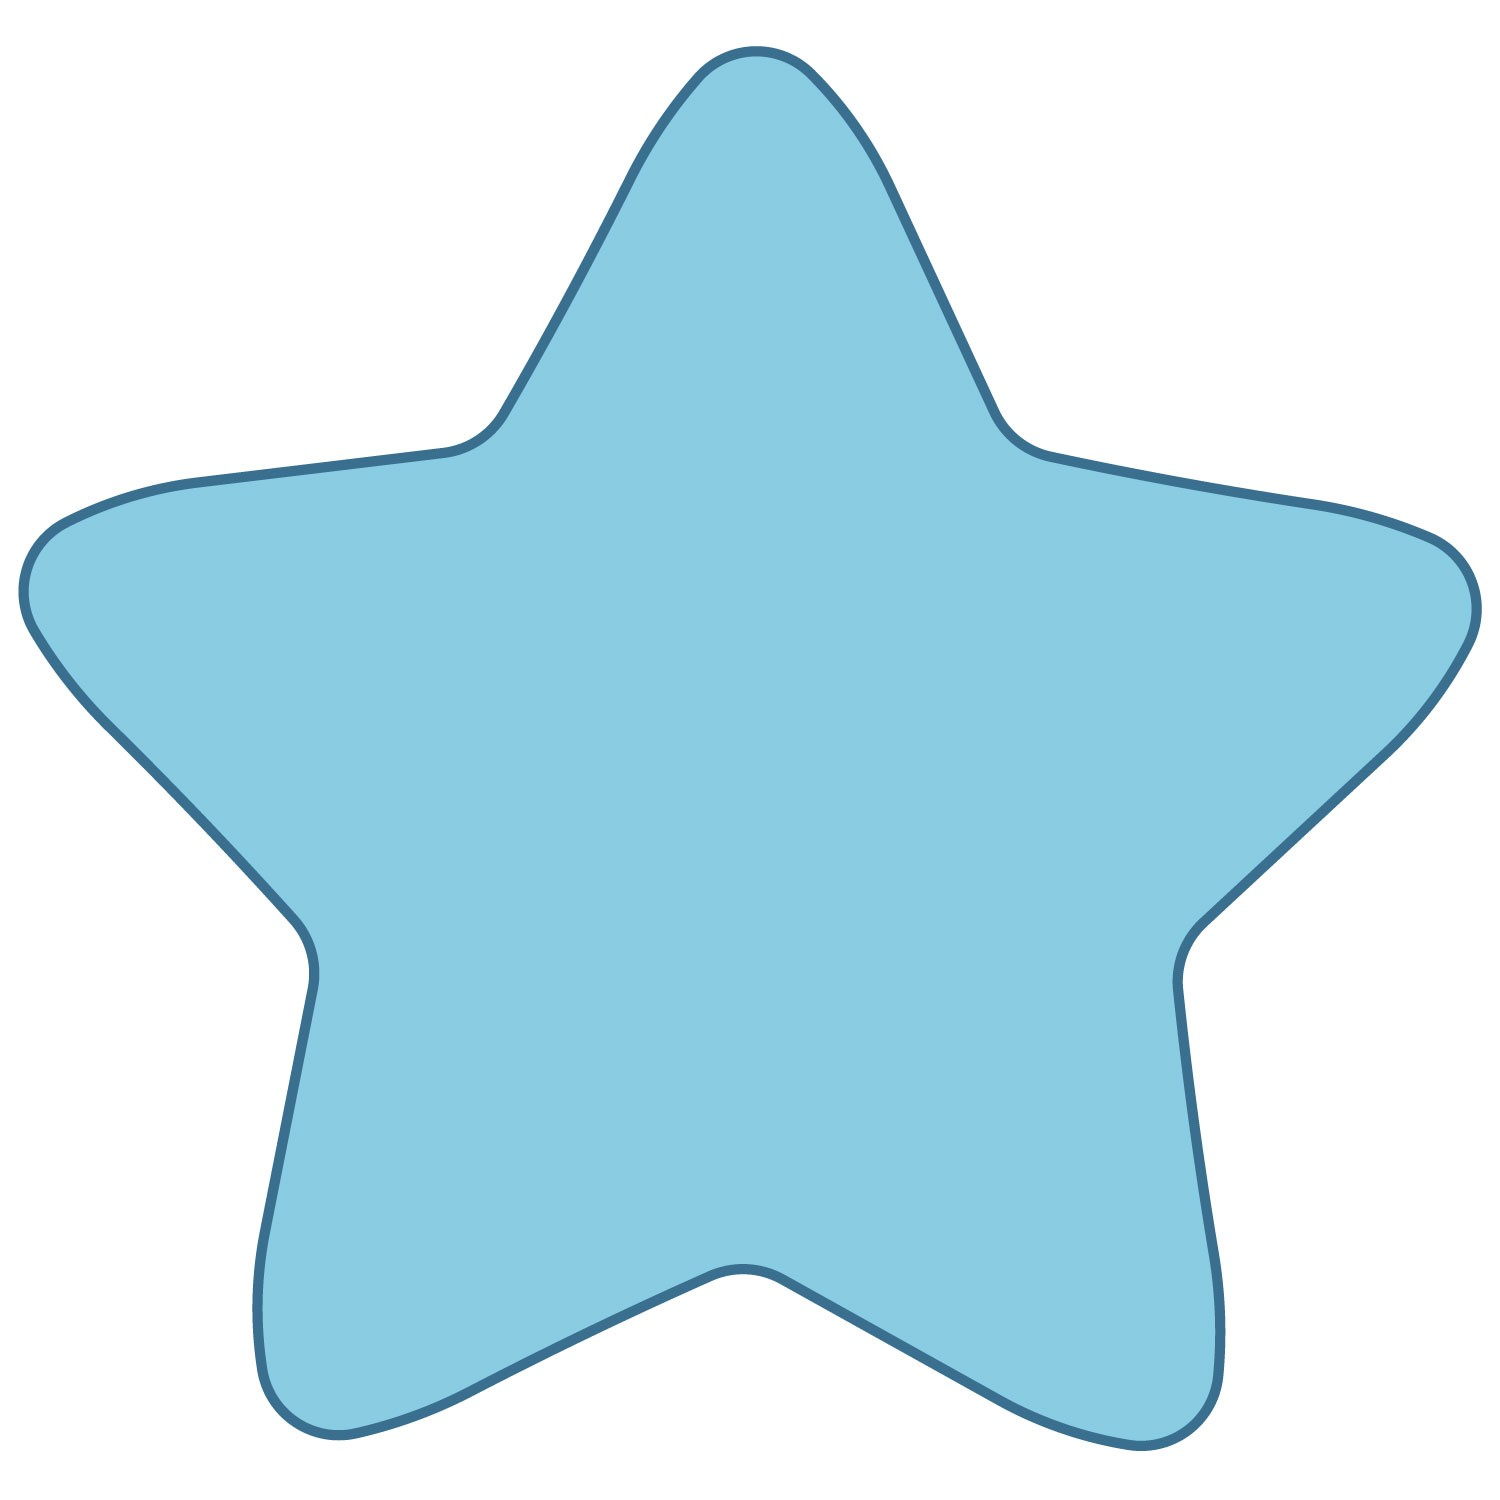 Rounded Star Template - ClipArt Best